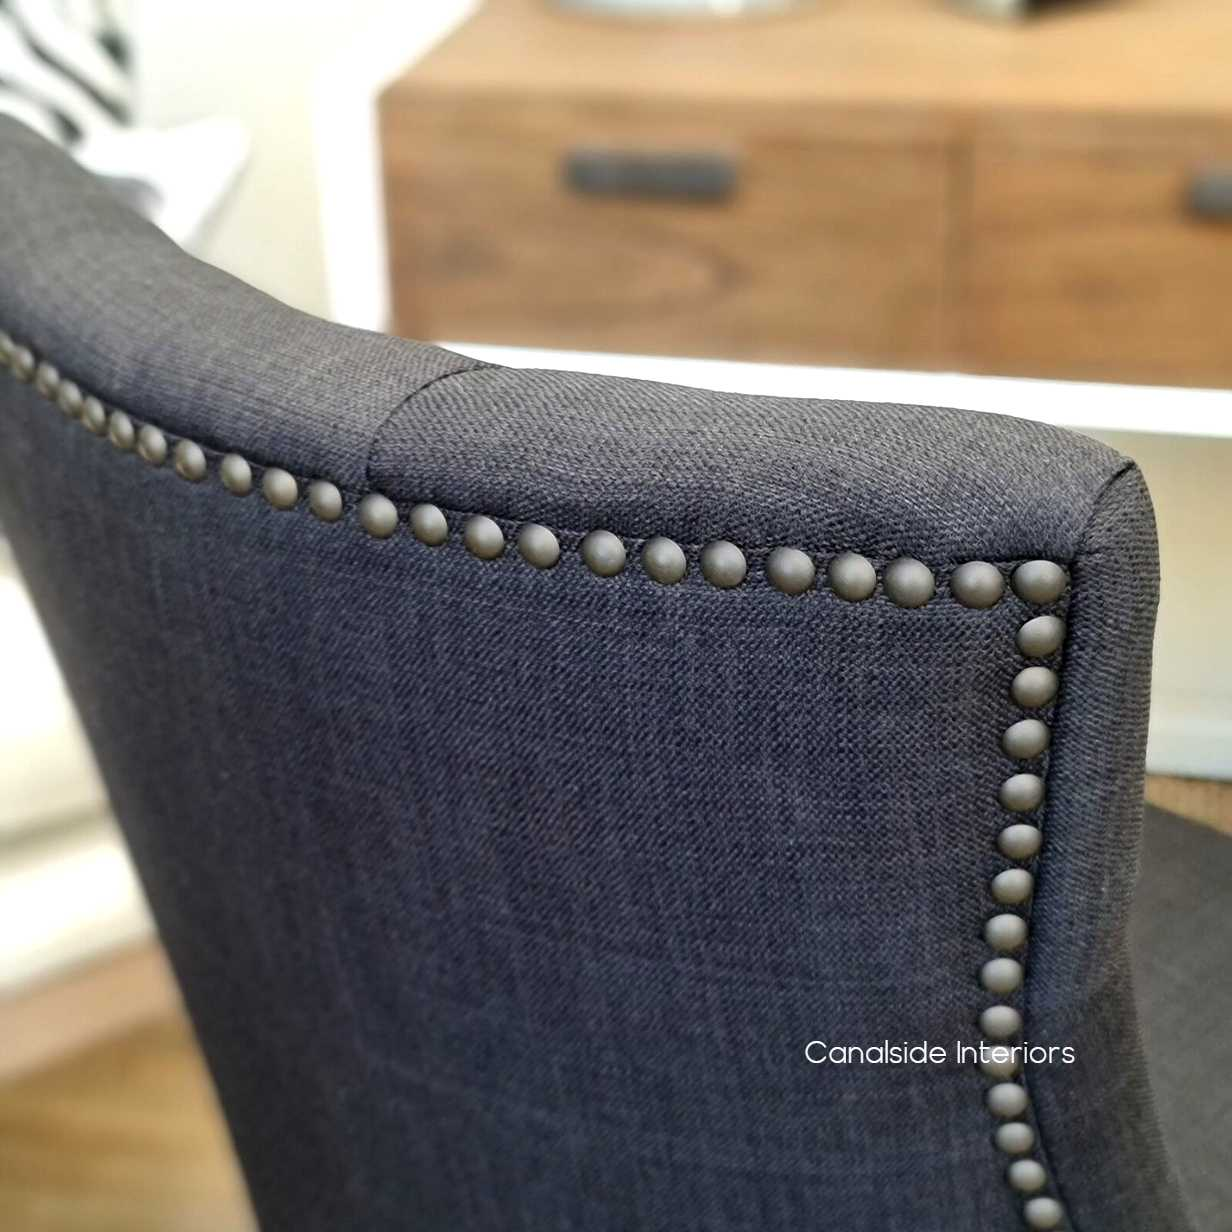 Bennet Button Back Upholstered Dining Chair Black Charcoal  FRENCH  FURNITURE, CHAIRS, HAMPTONS Style, PLANTATION Style, CHAIRS Dining